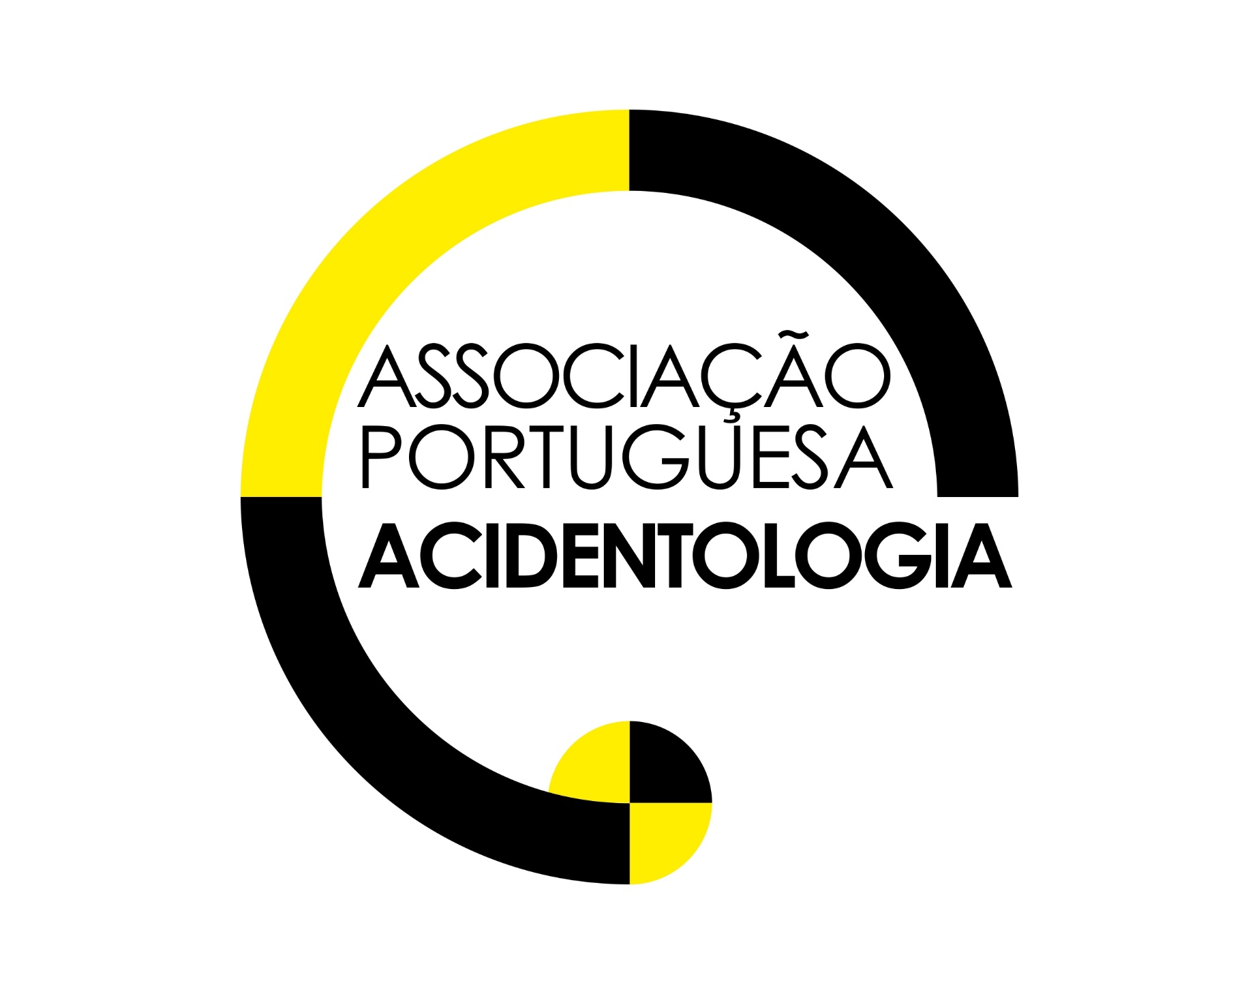 Acidentologia